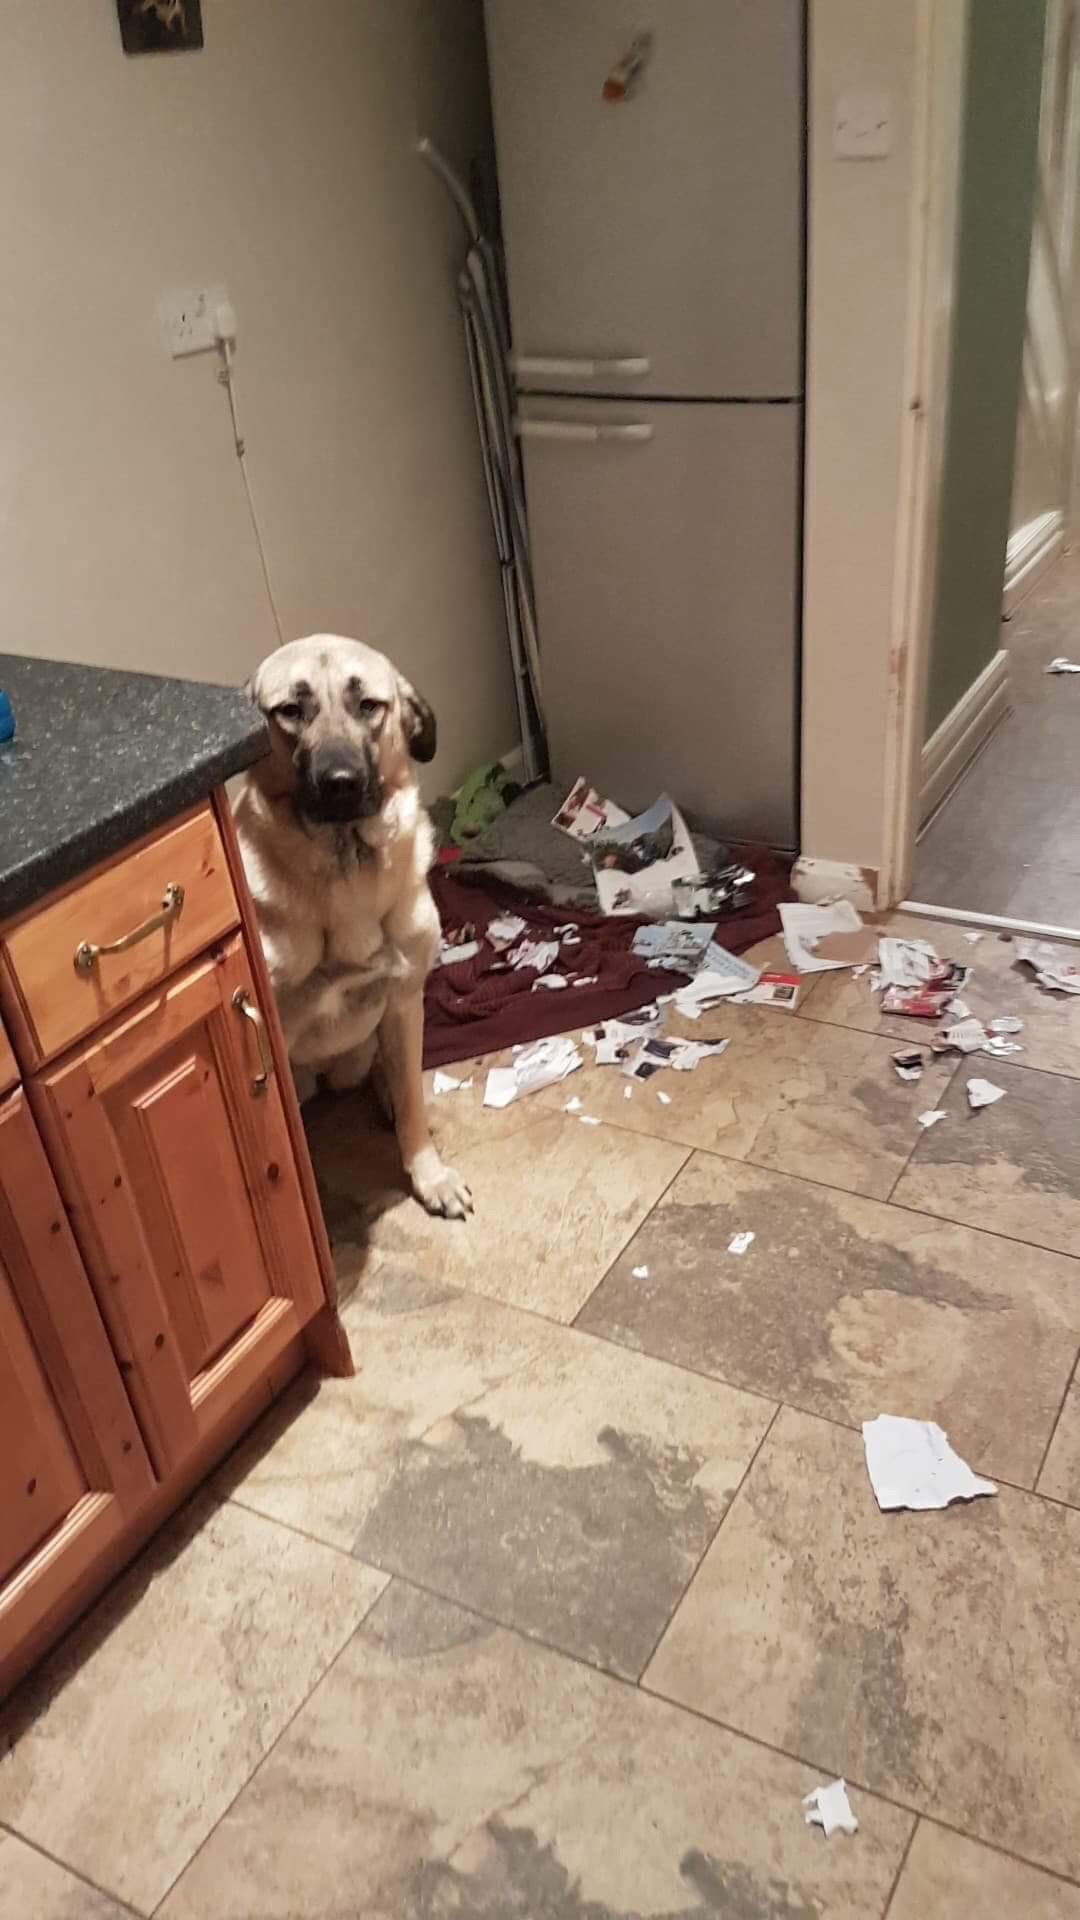 Dog showing anxiety